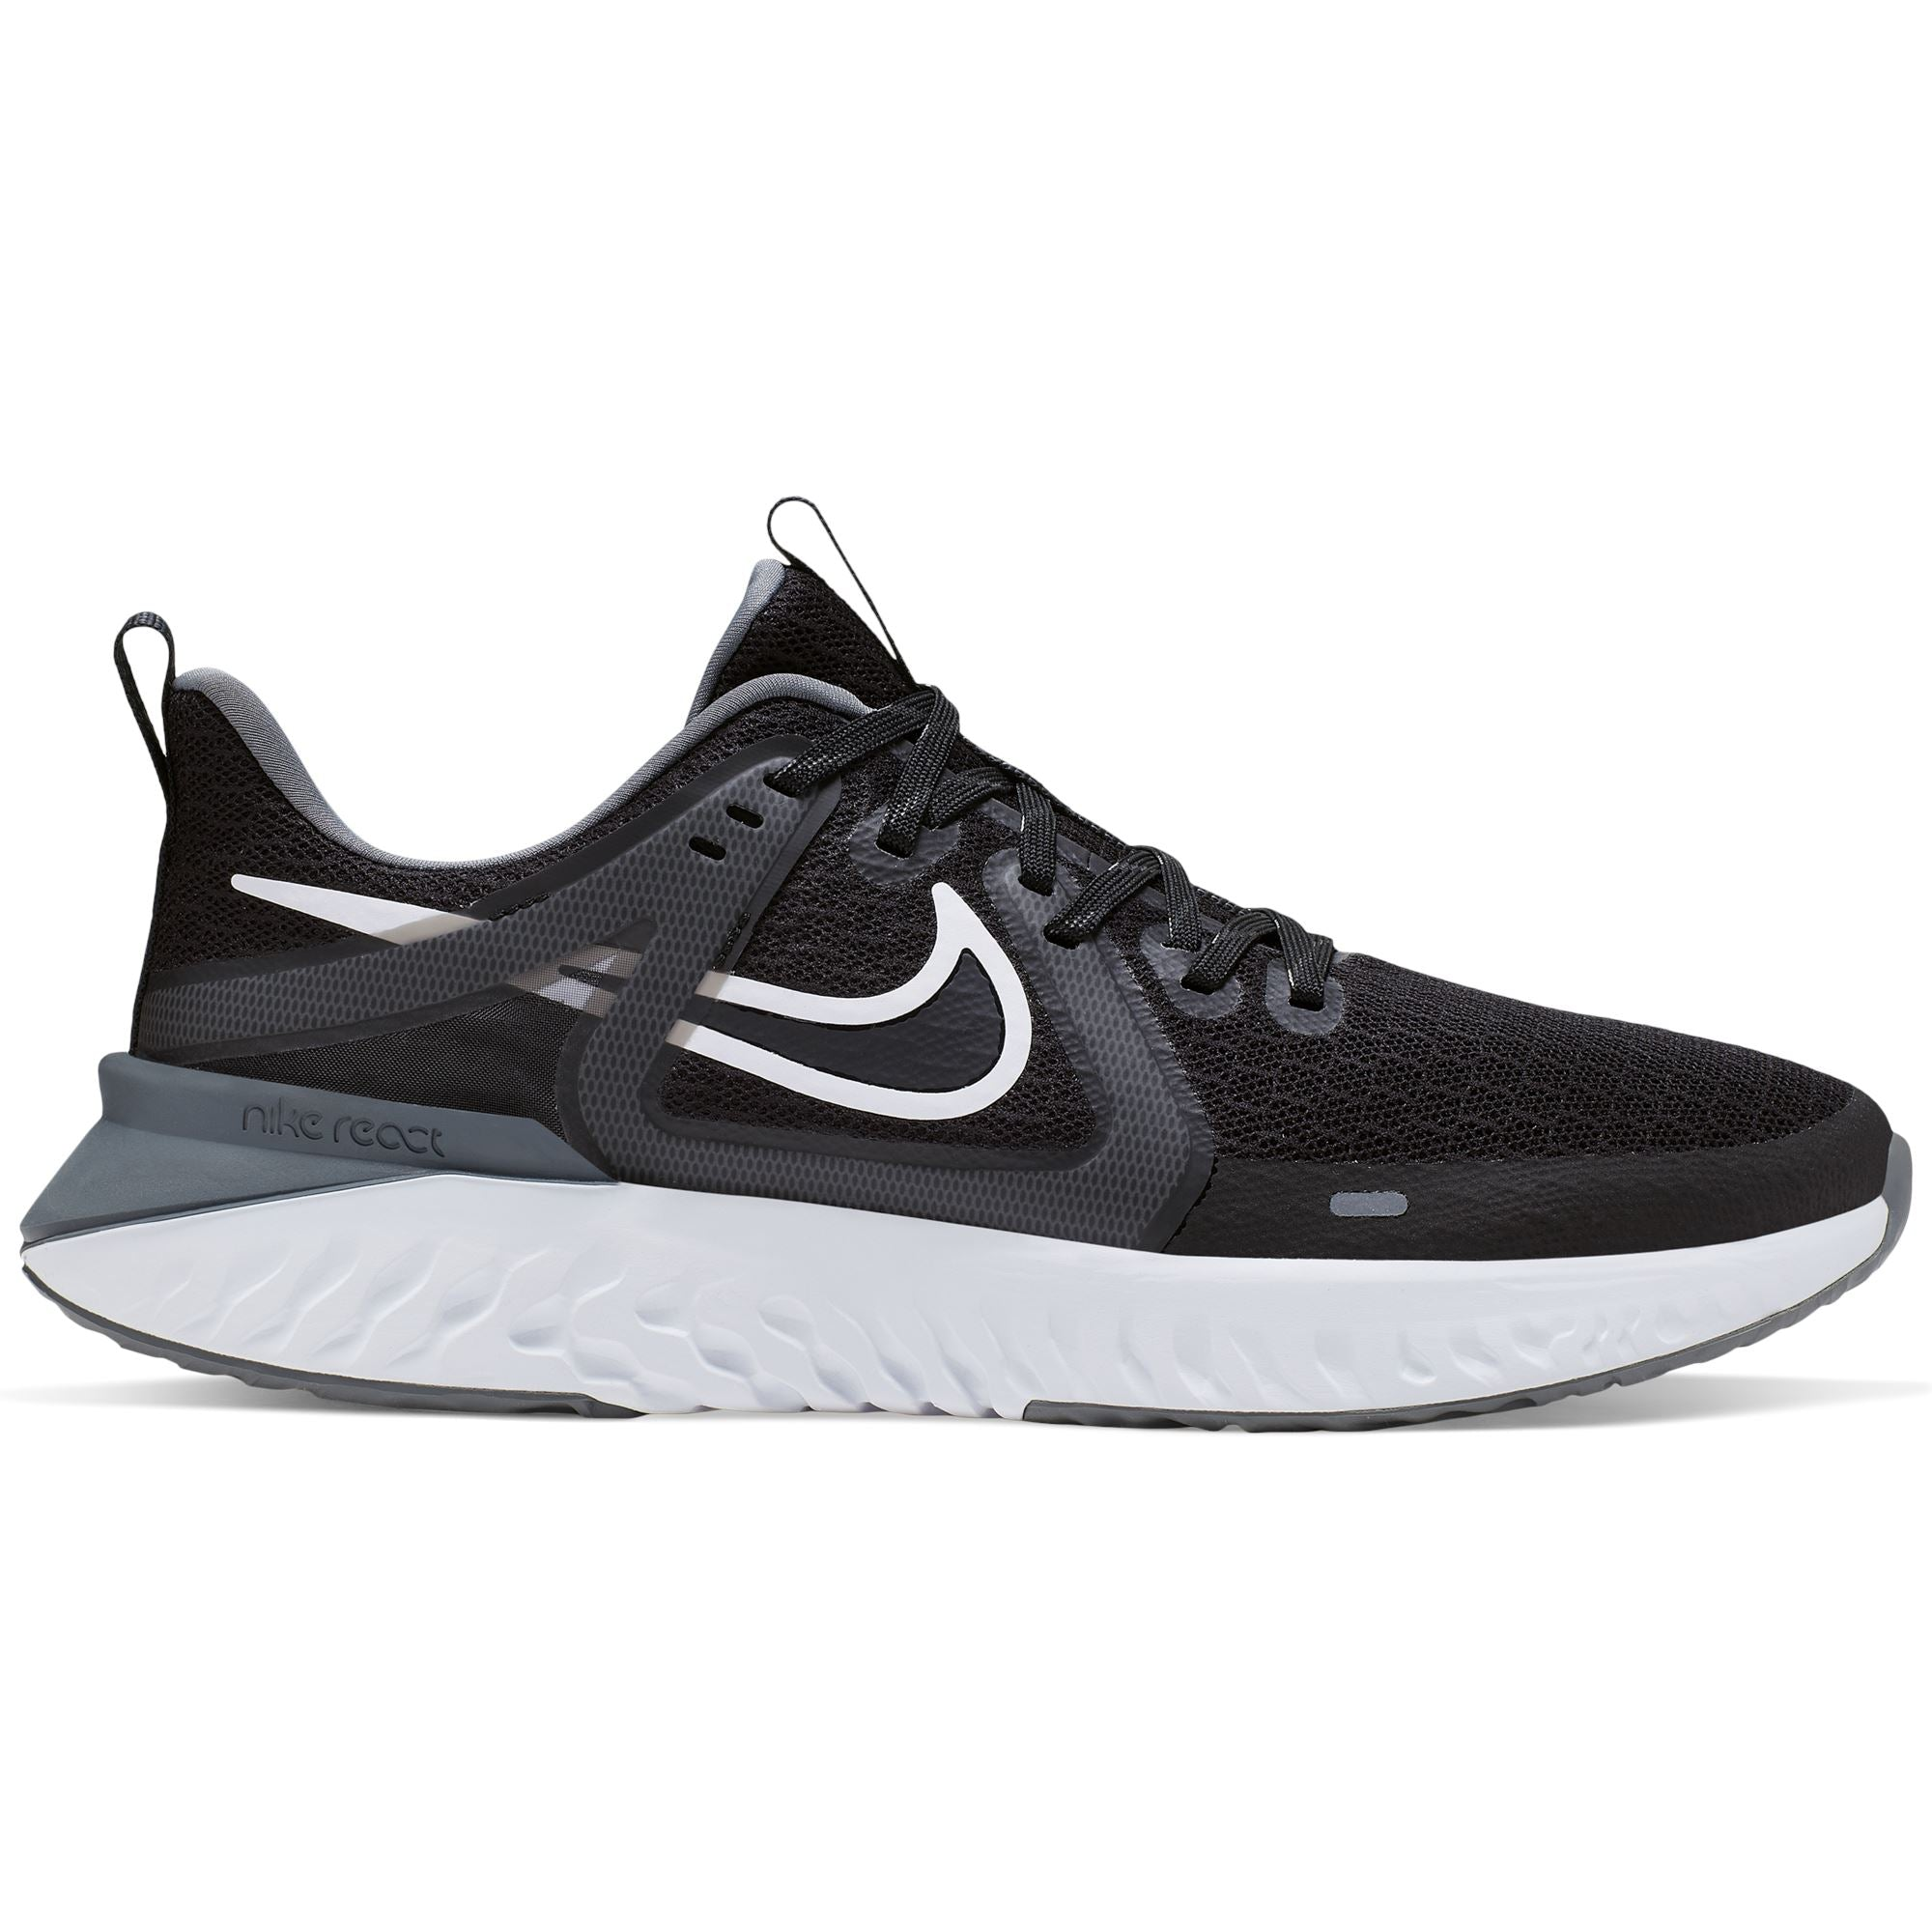 Nike Mens Legend React 2 - Black/White-Cool Grey-Mtlc Cool Grey Q3NIKE Nike